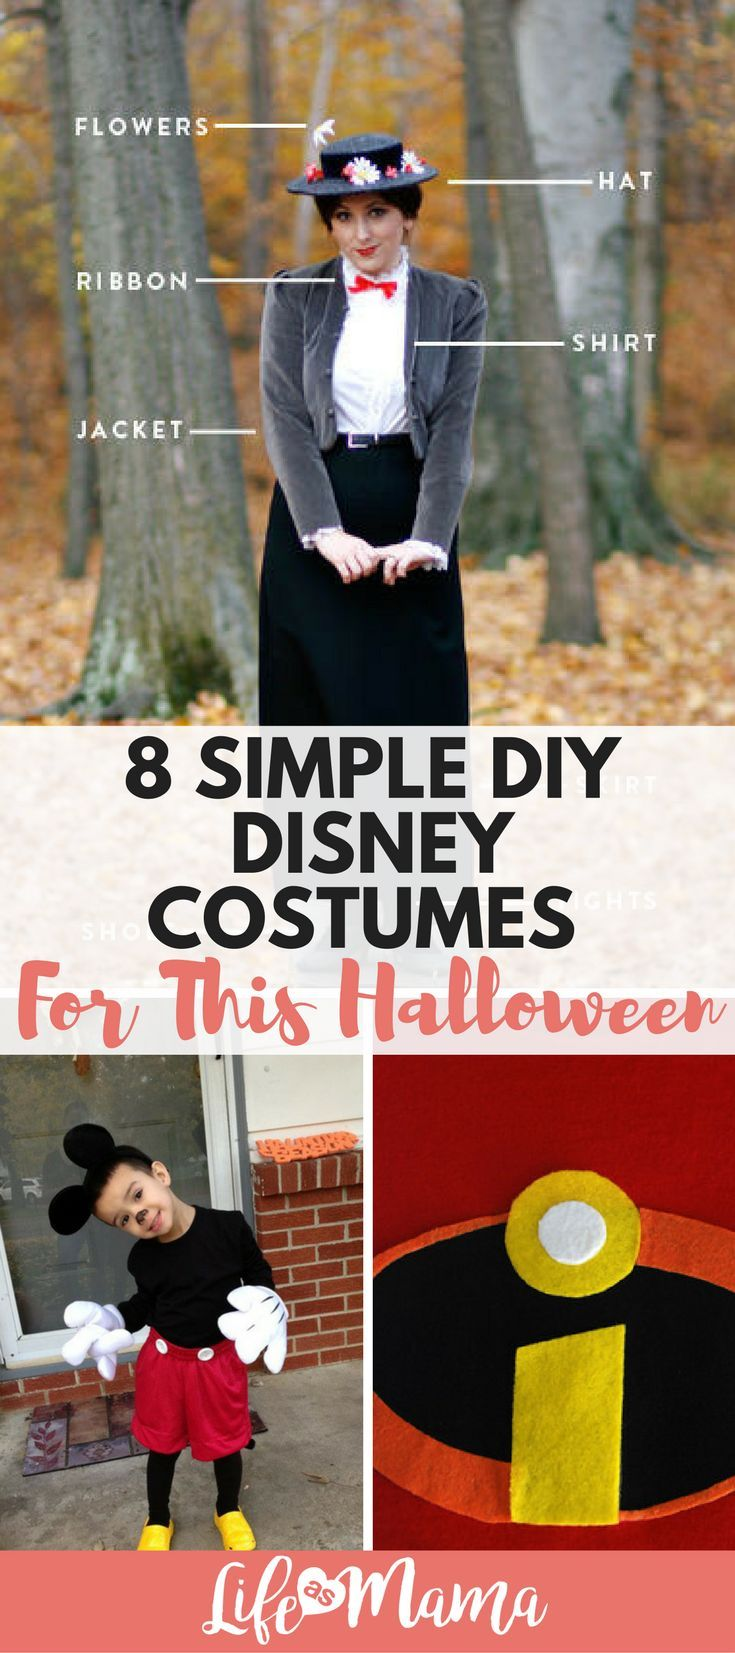 8 Simple DIY Disney Costumes For This Halloween is part of Disney costumes diy - It's no secret that most everybody loves Disney movies and that Disney characters are some of the most popular costumes come Halloween  But have you ever attempted to buy a Disney made costume  The cost